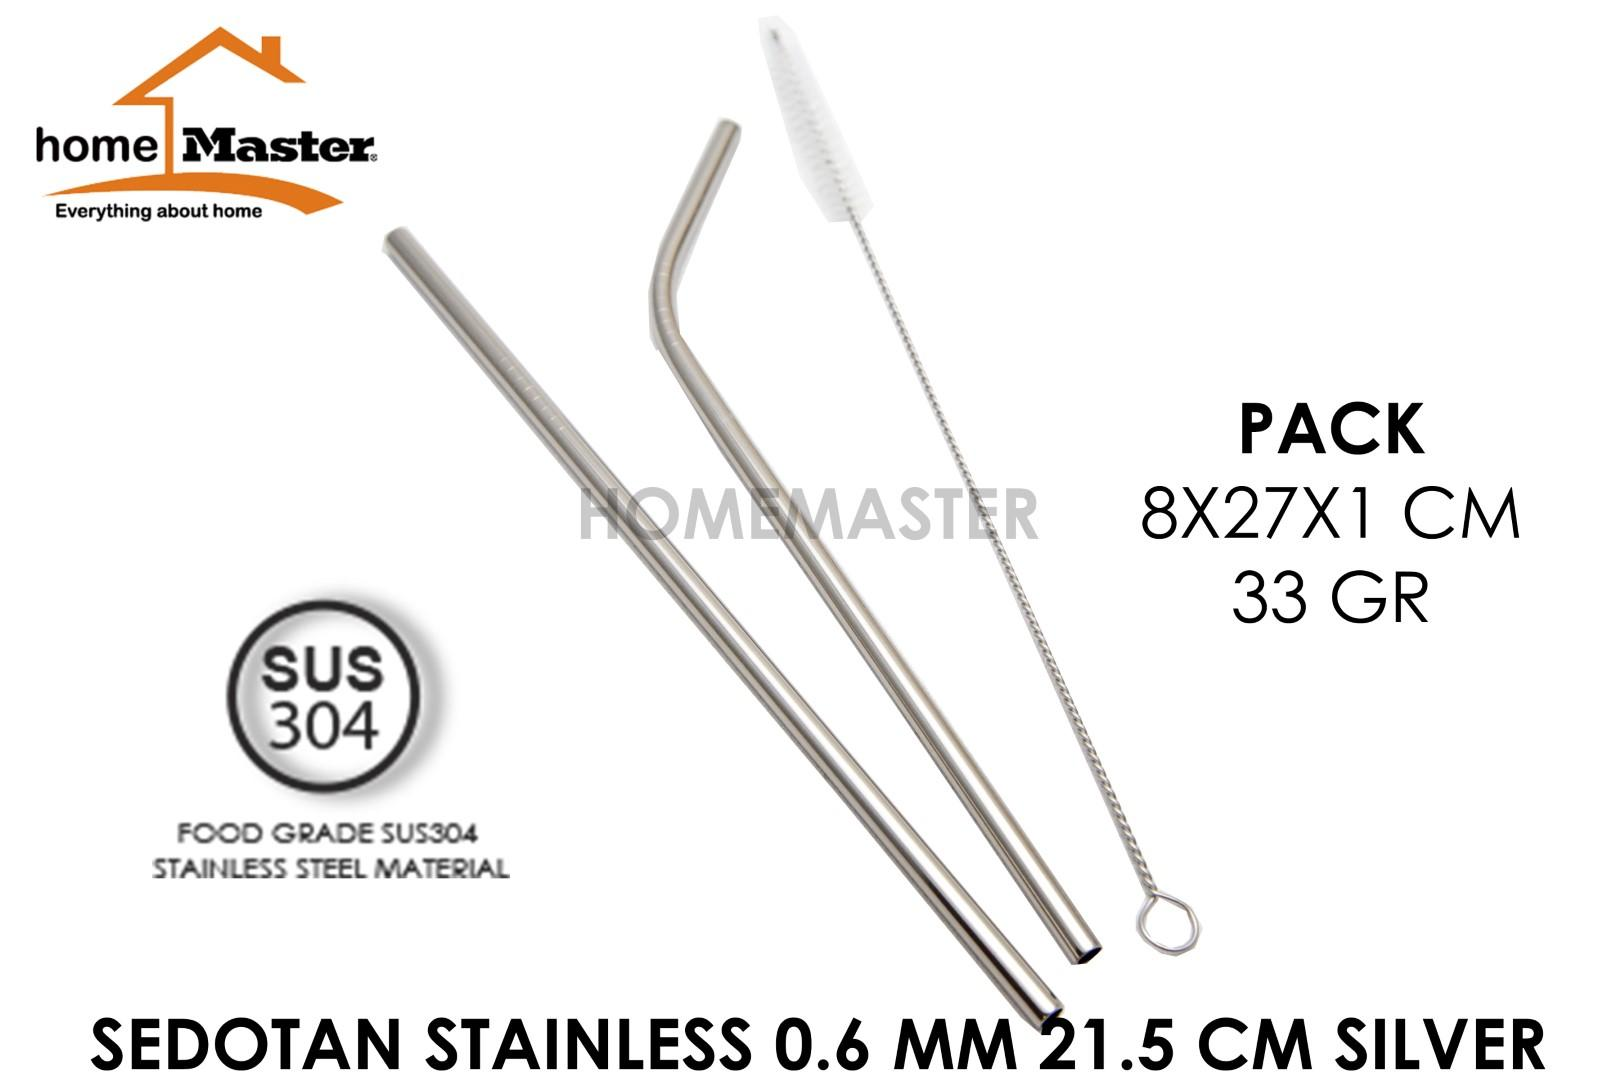 Homemaster Set Straw/sedotan Stainless 304 0.6 Mm 2 Pcs Dengan Sikat 21.5 Cm Ss62153set By Homemaster.